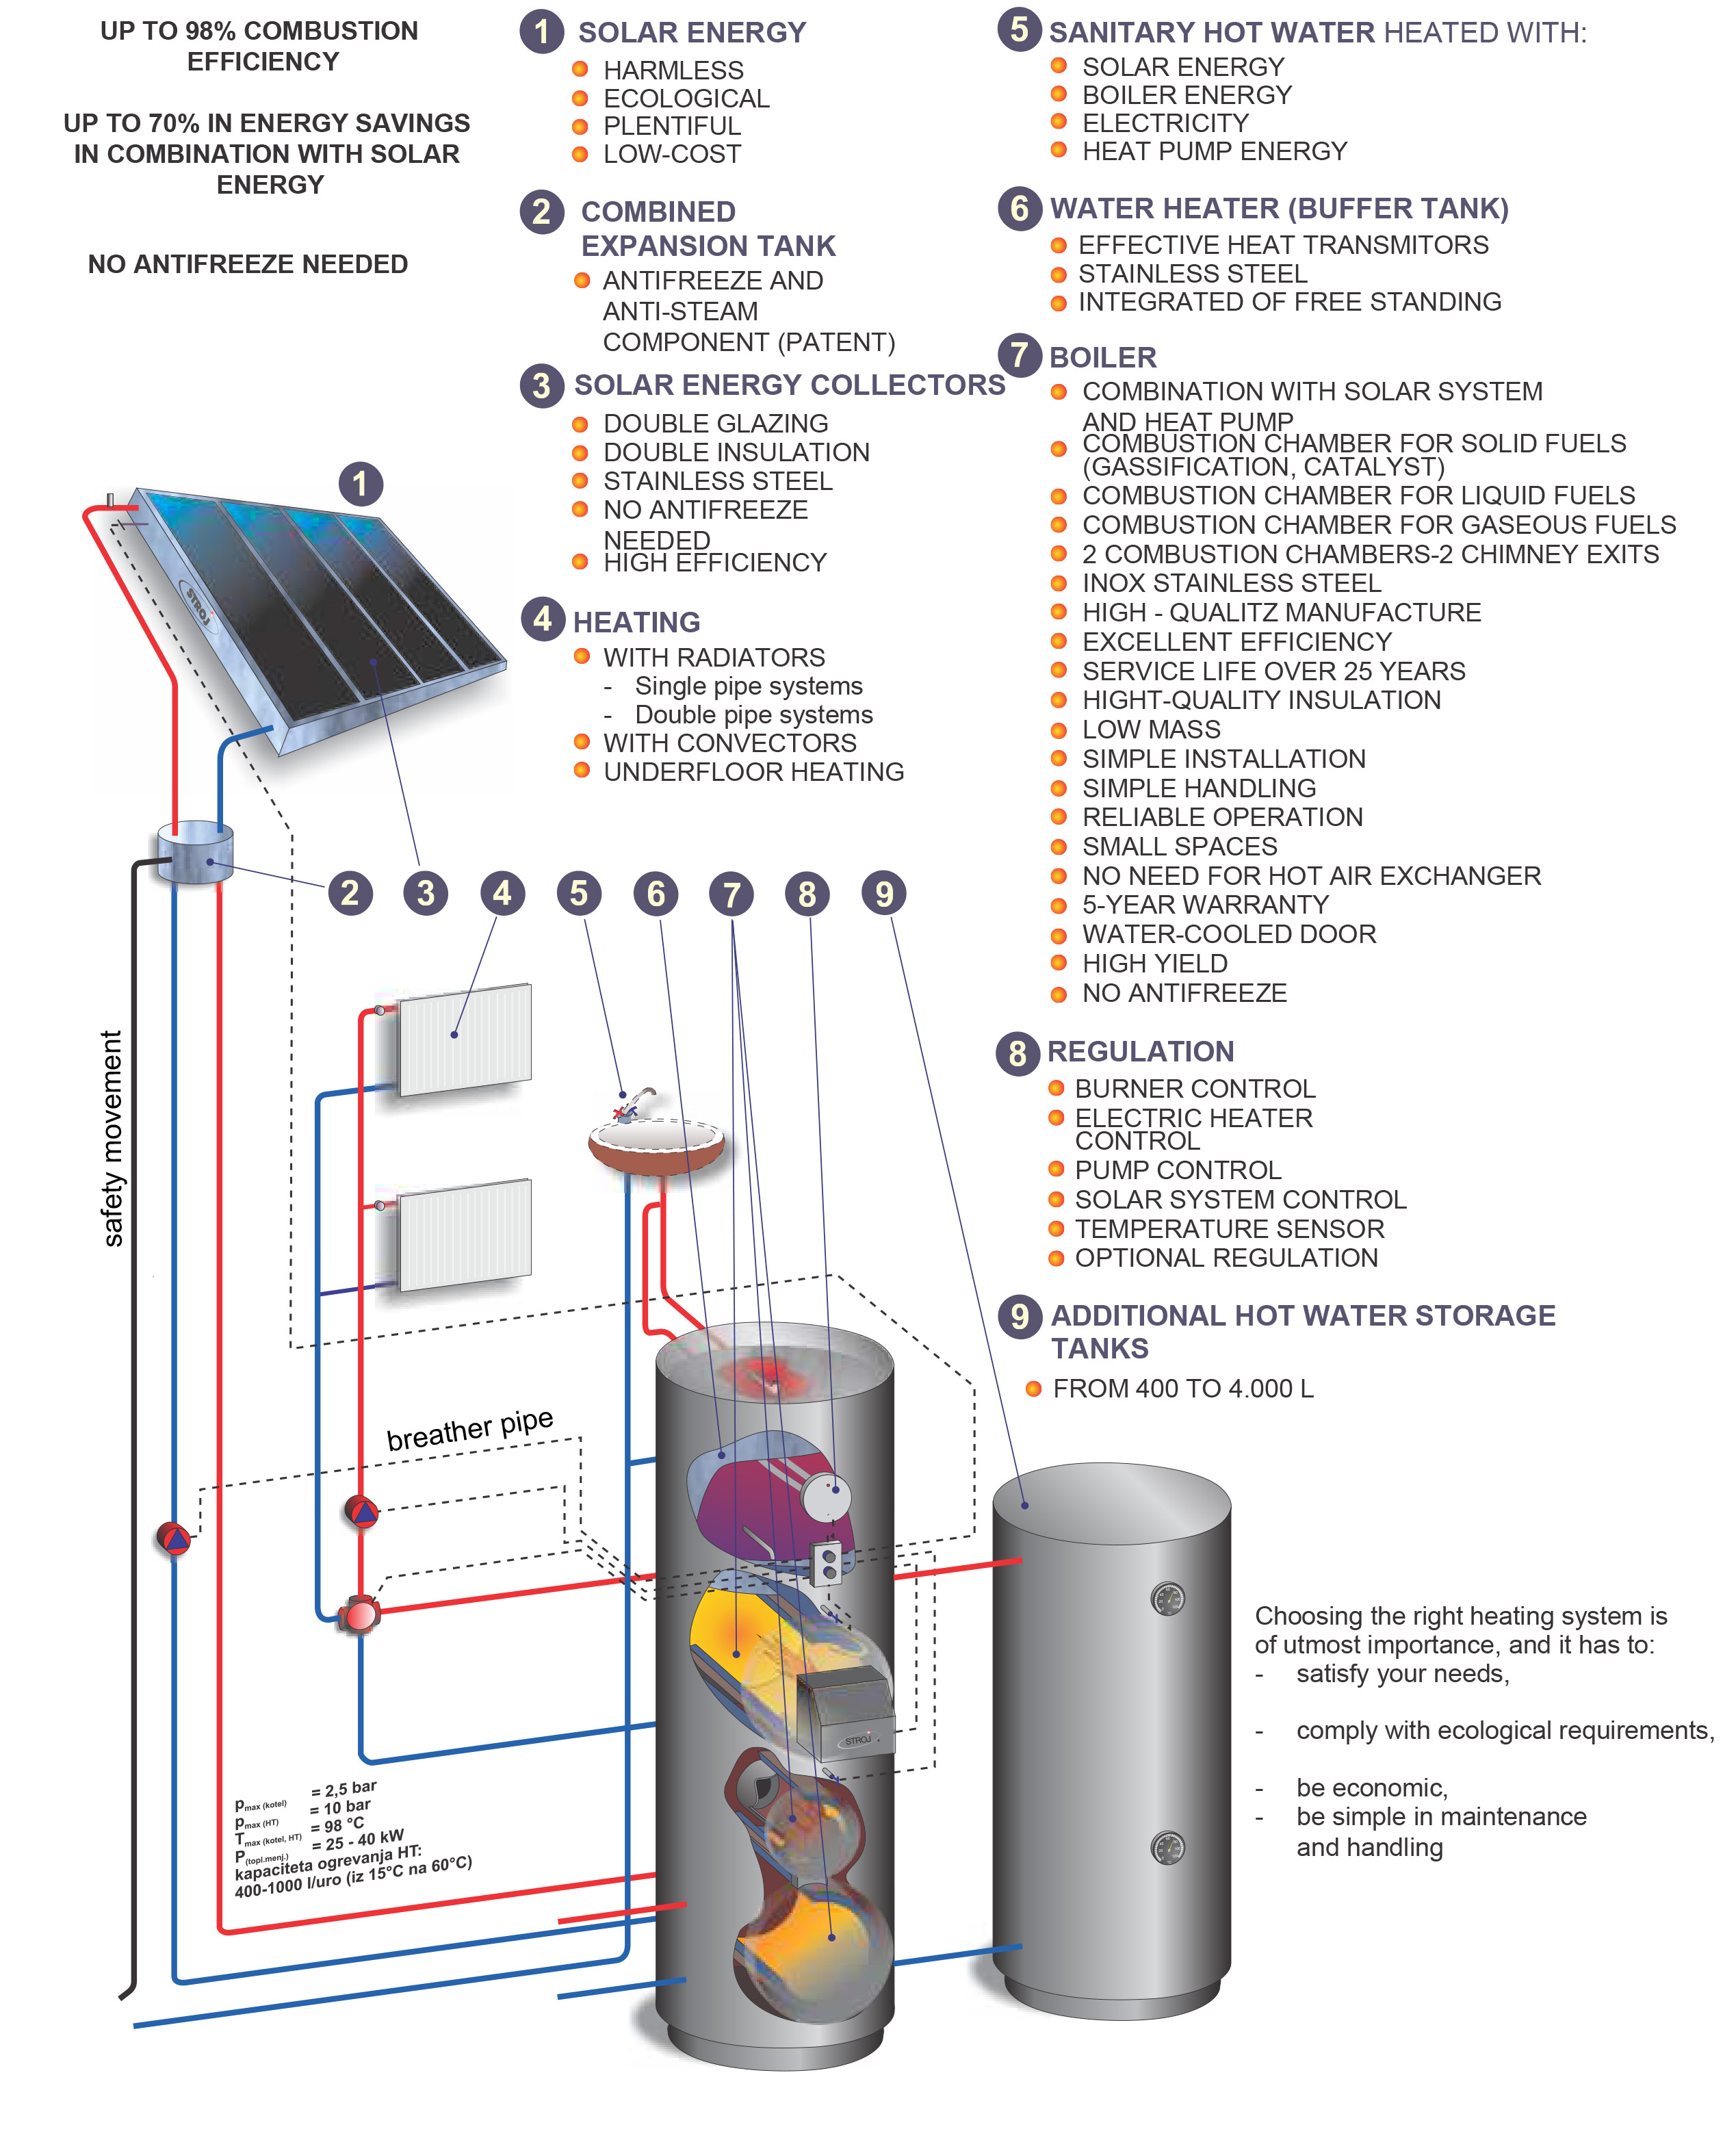 Combined Solar Heating For Indoor Spaces And Domestic Hot Water